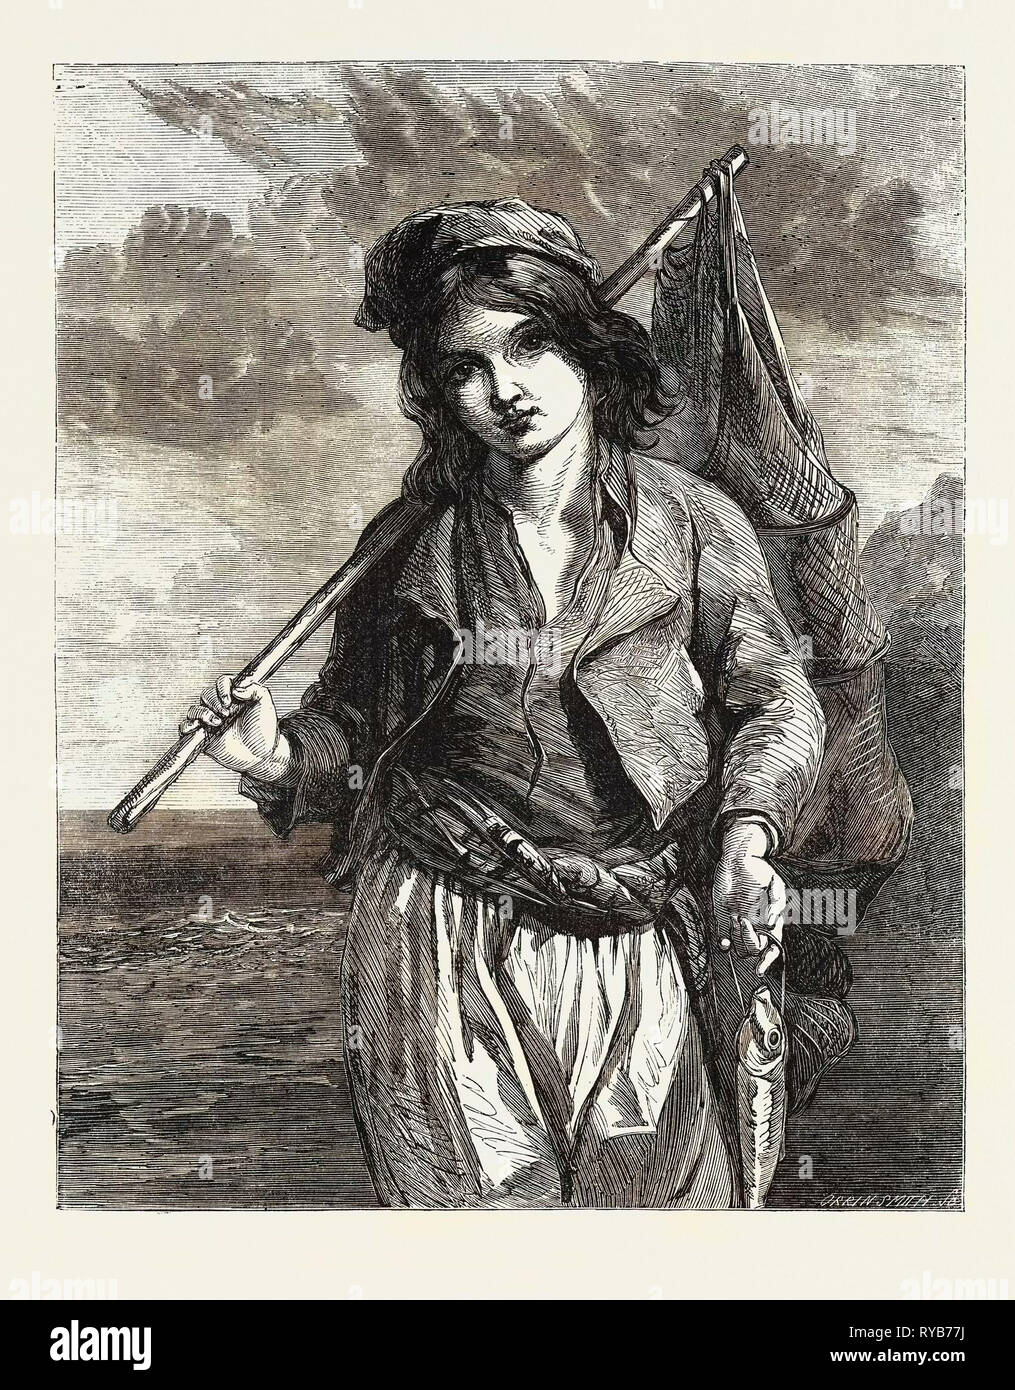 A Neapolitan Fisher Boy., Exhibition of the Society of British Artists in Suffolk Street, London, UK, 1855 - Stock Image